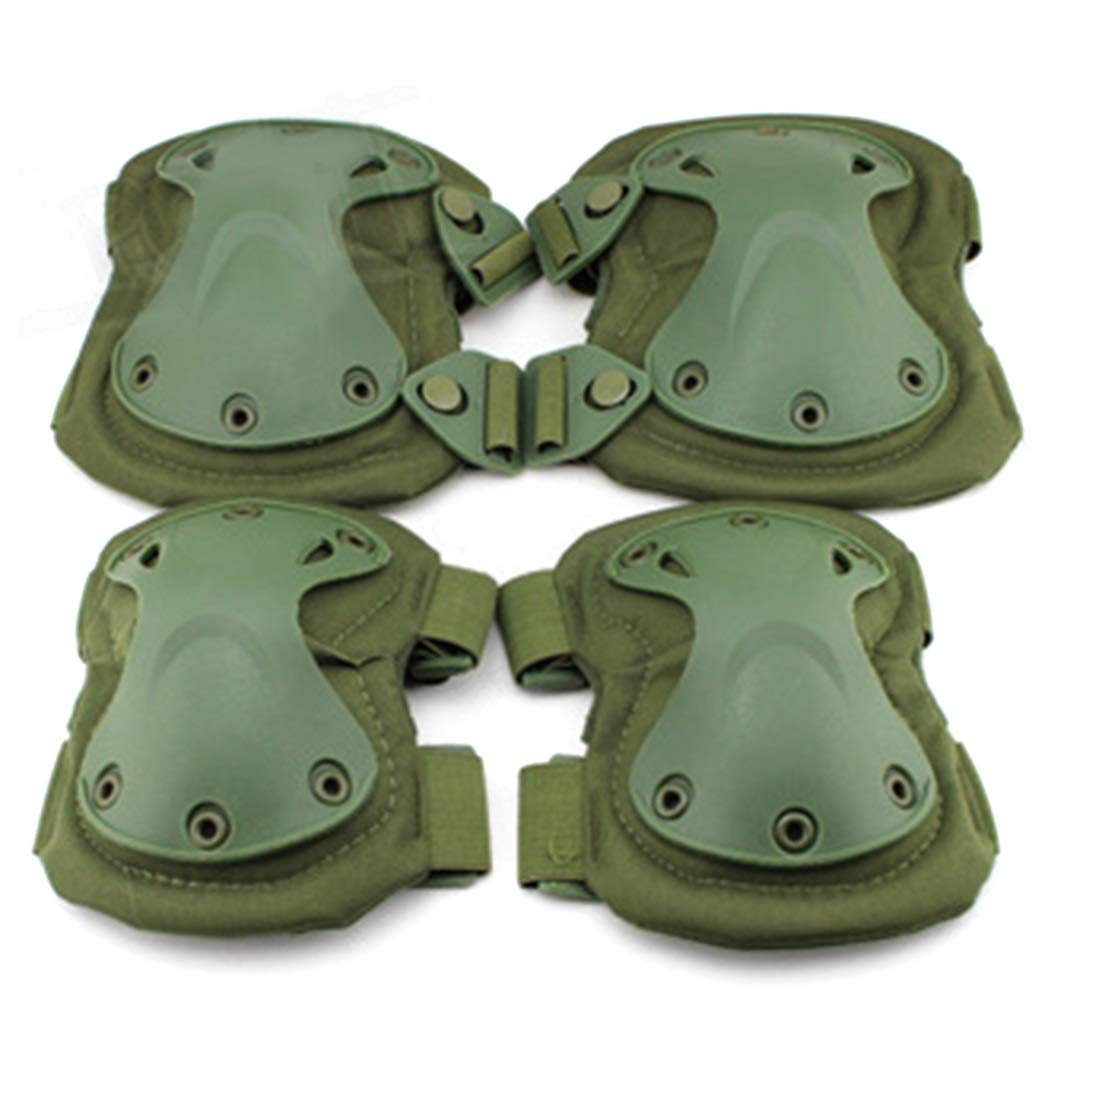 AIYAMAYA EVA Protective Gear Outdoor Riding Hiking Knee Pads Elbow Suit Field Tactical Equipment Knee Pads Elbow Suit (Style : Green (PA-03-OD))